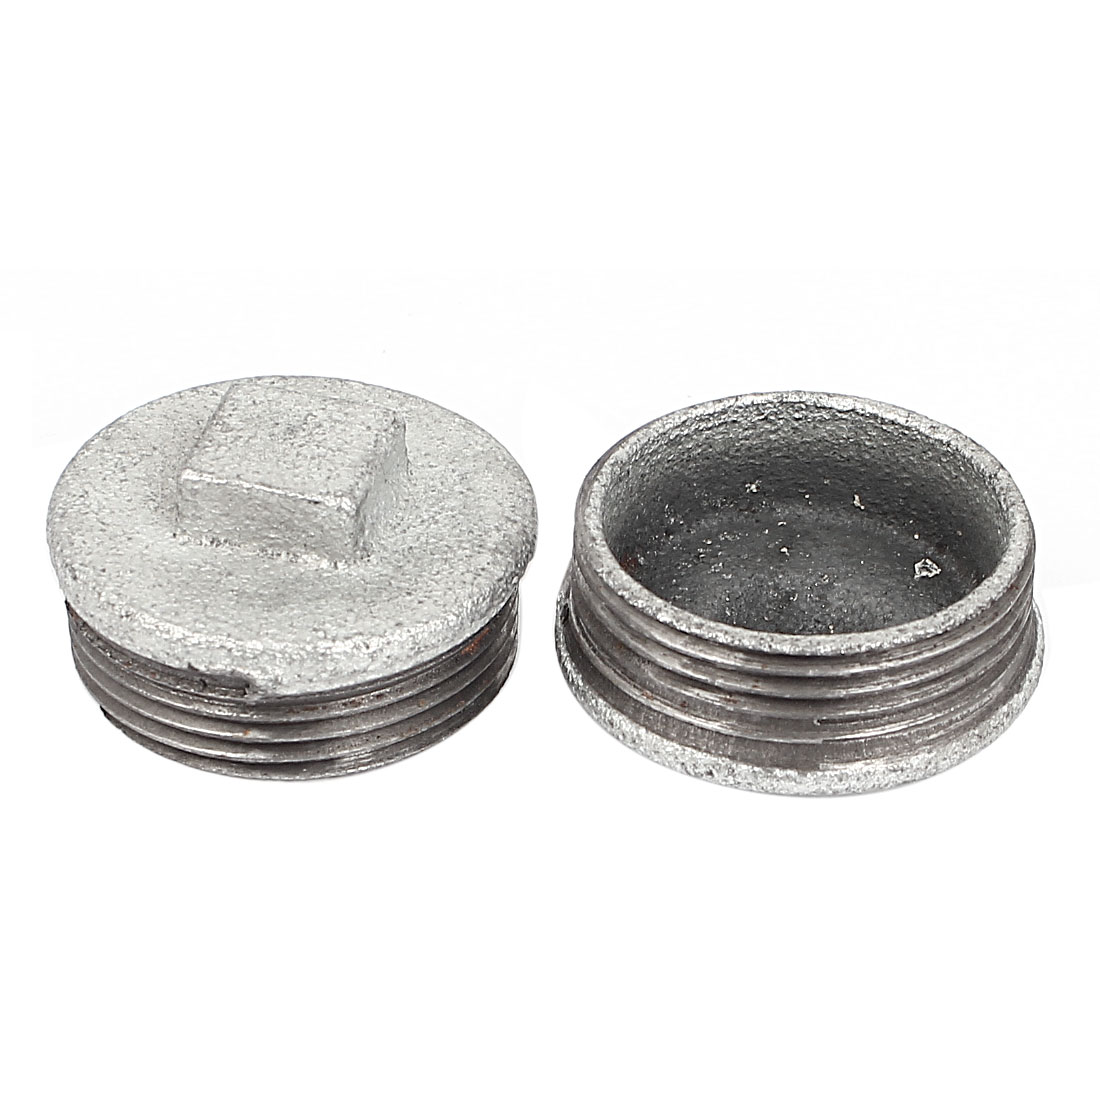 Metal 1 1/4BSP Male Threaded Brewing Square Head Water Pipe 2Pcs